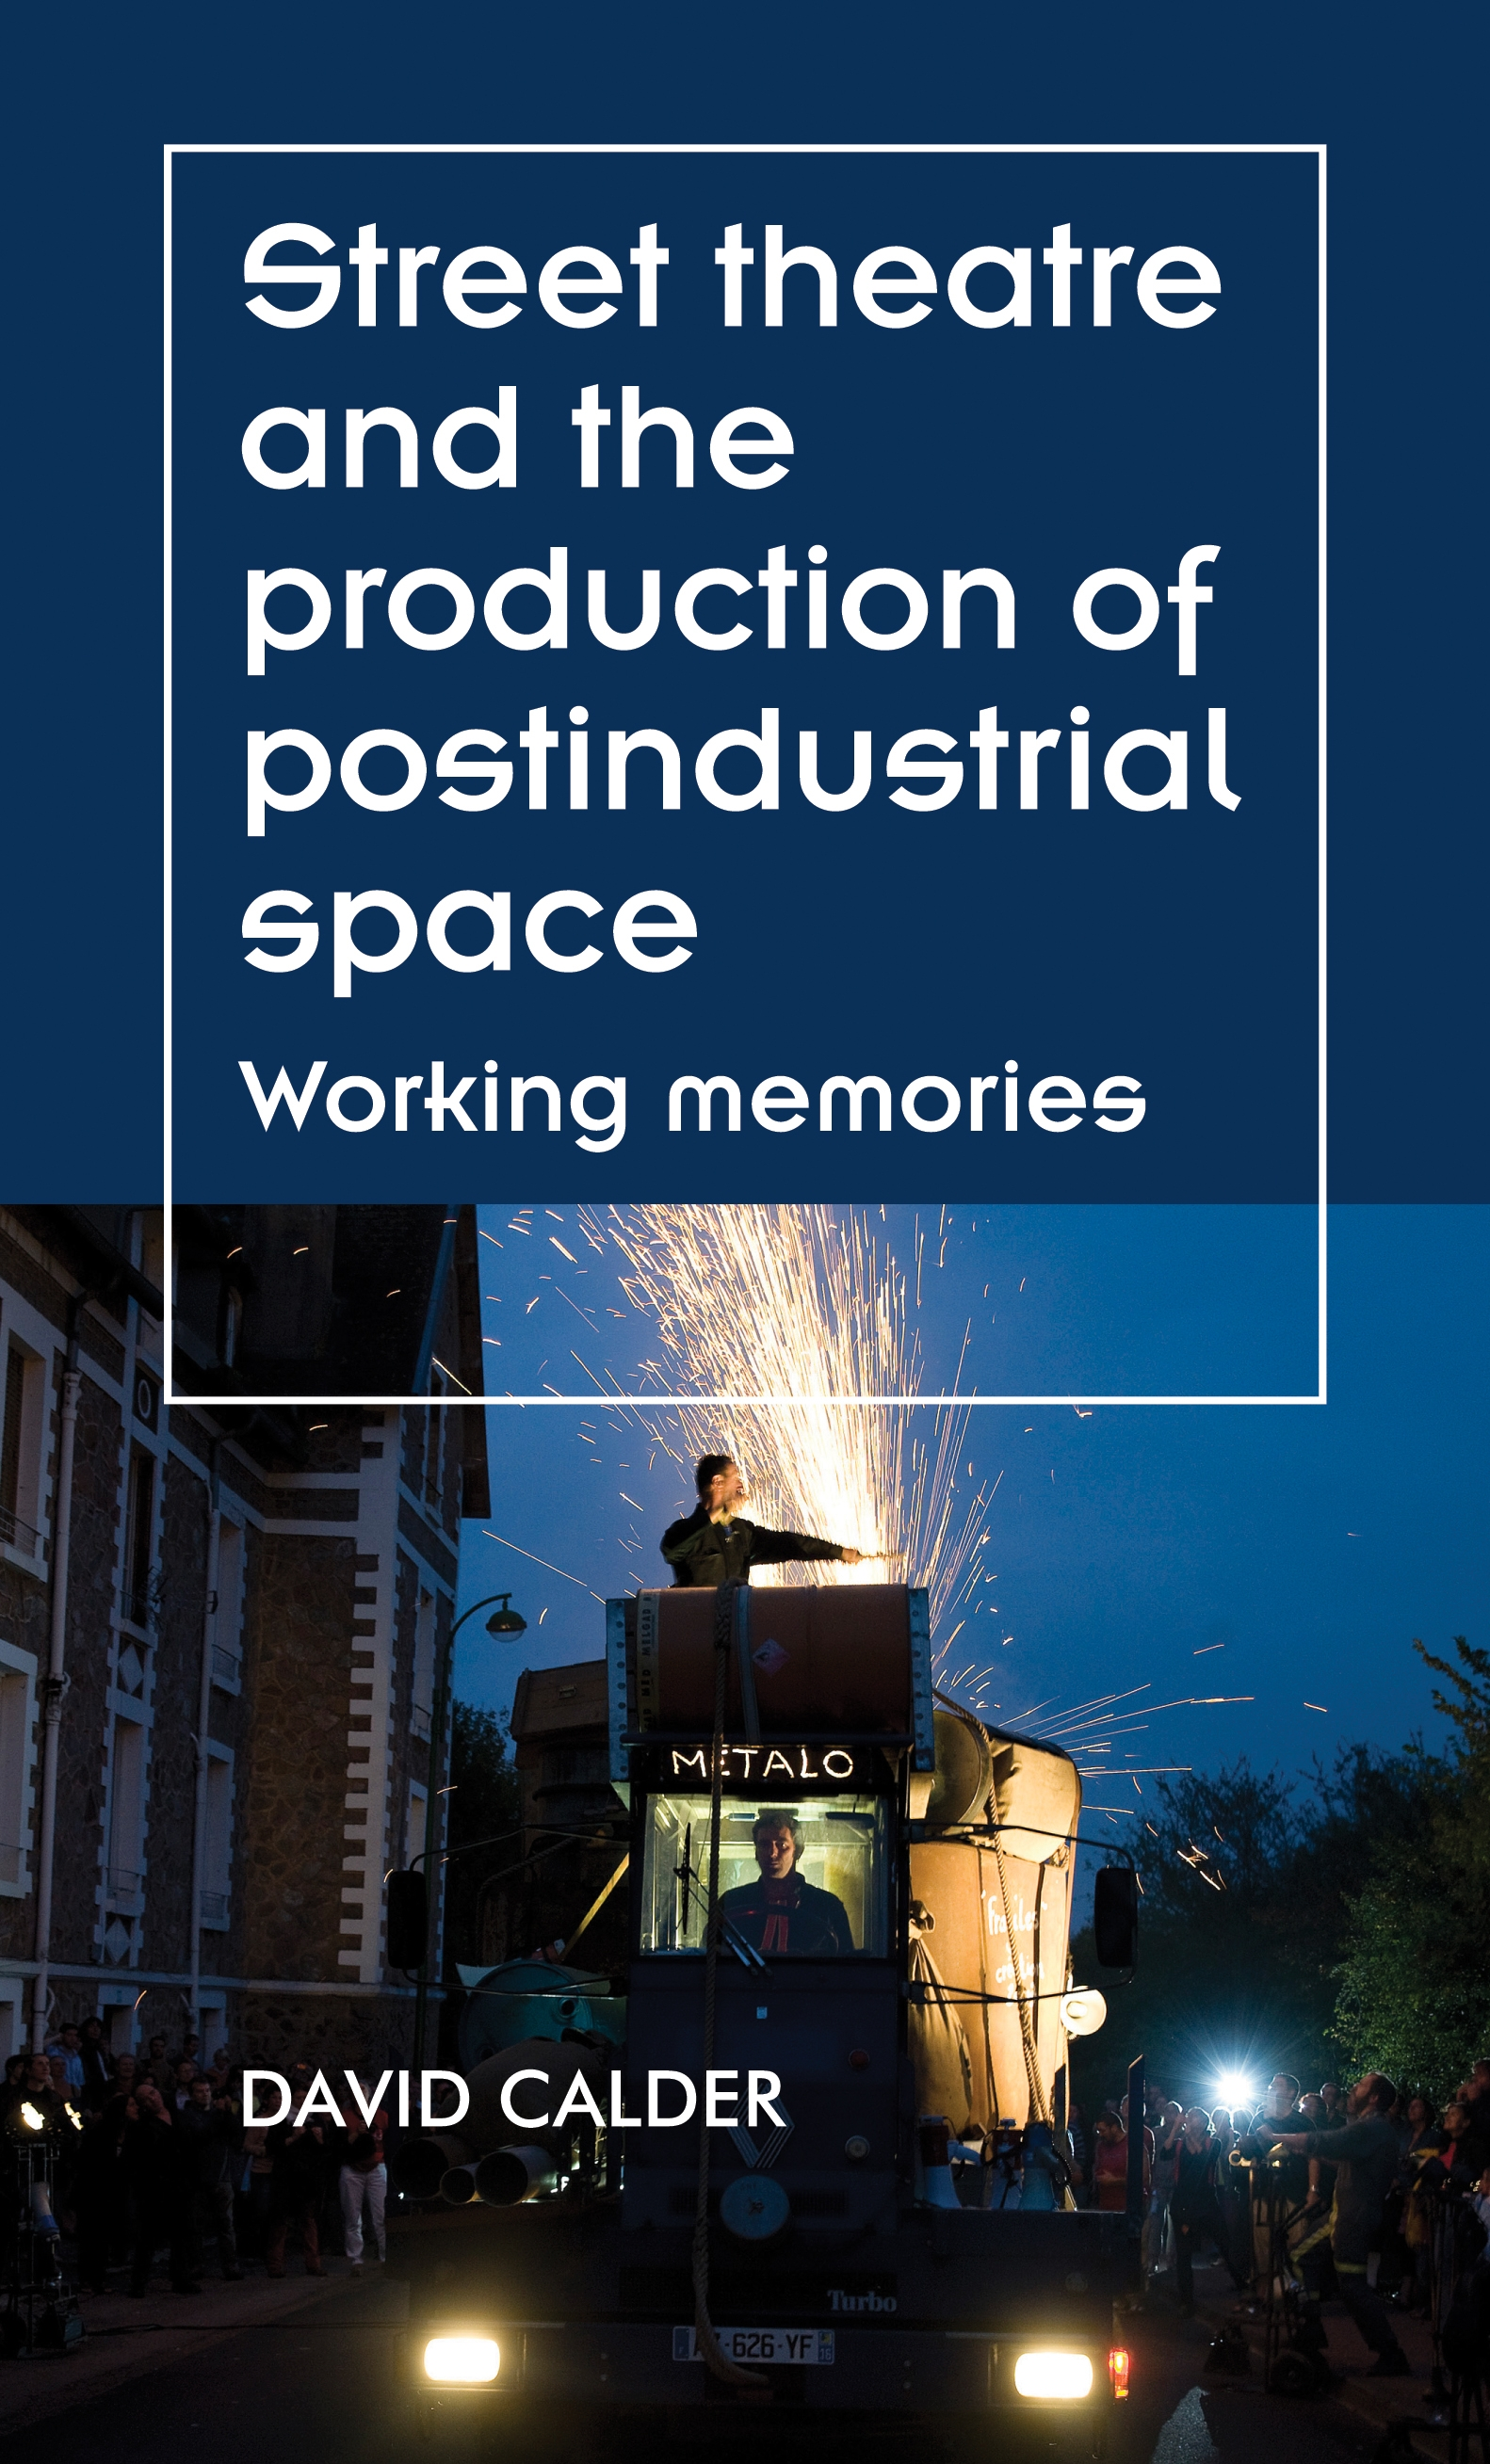 Street theatre and the production of postindustrial space – Q&A with David Calder